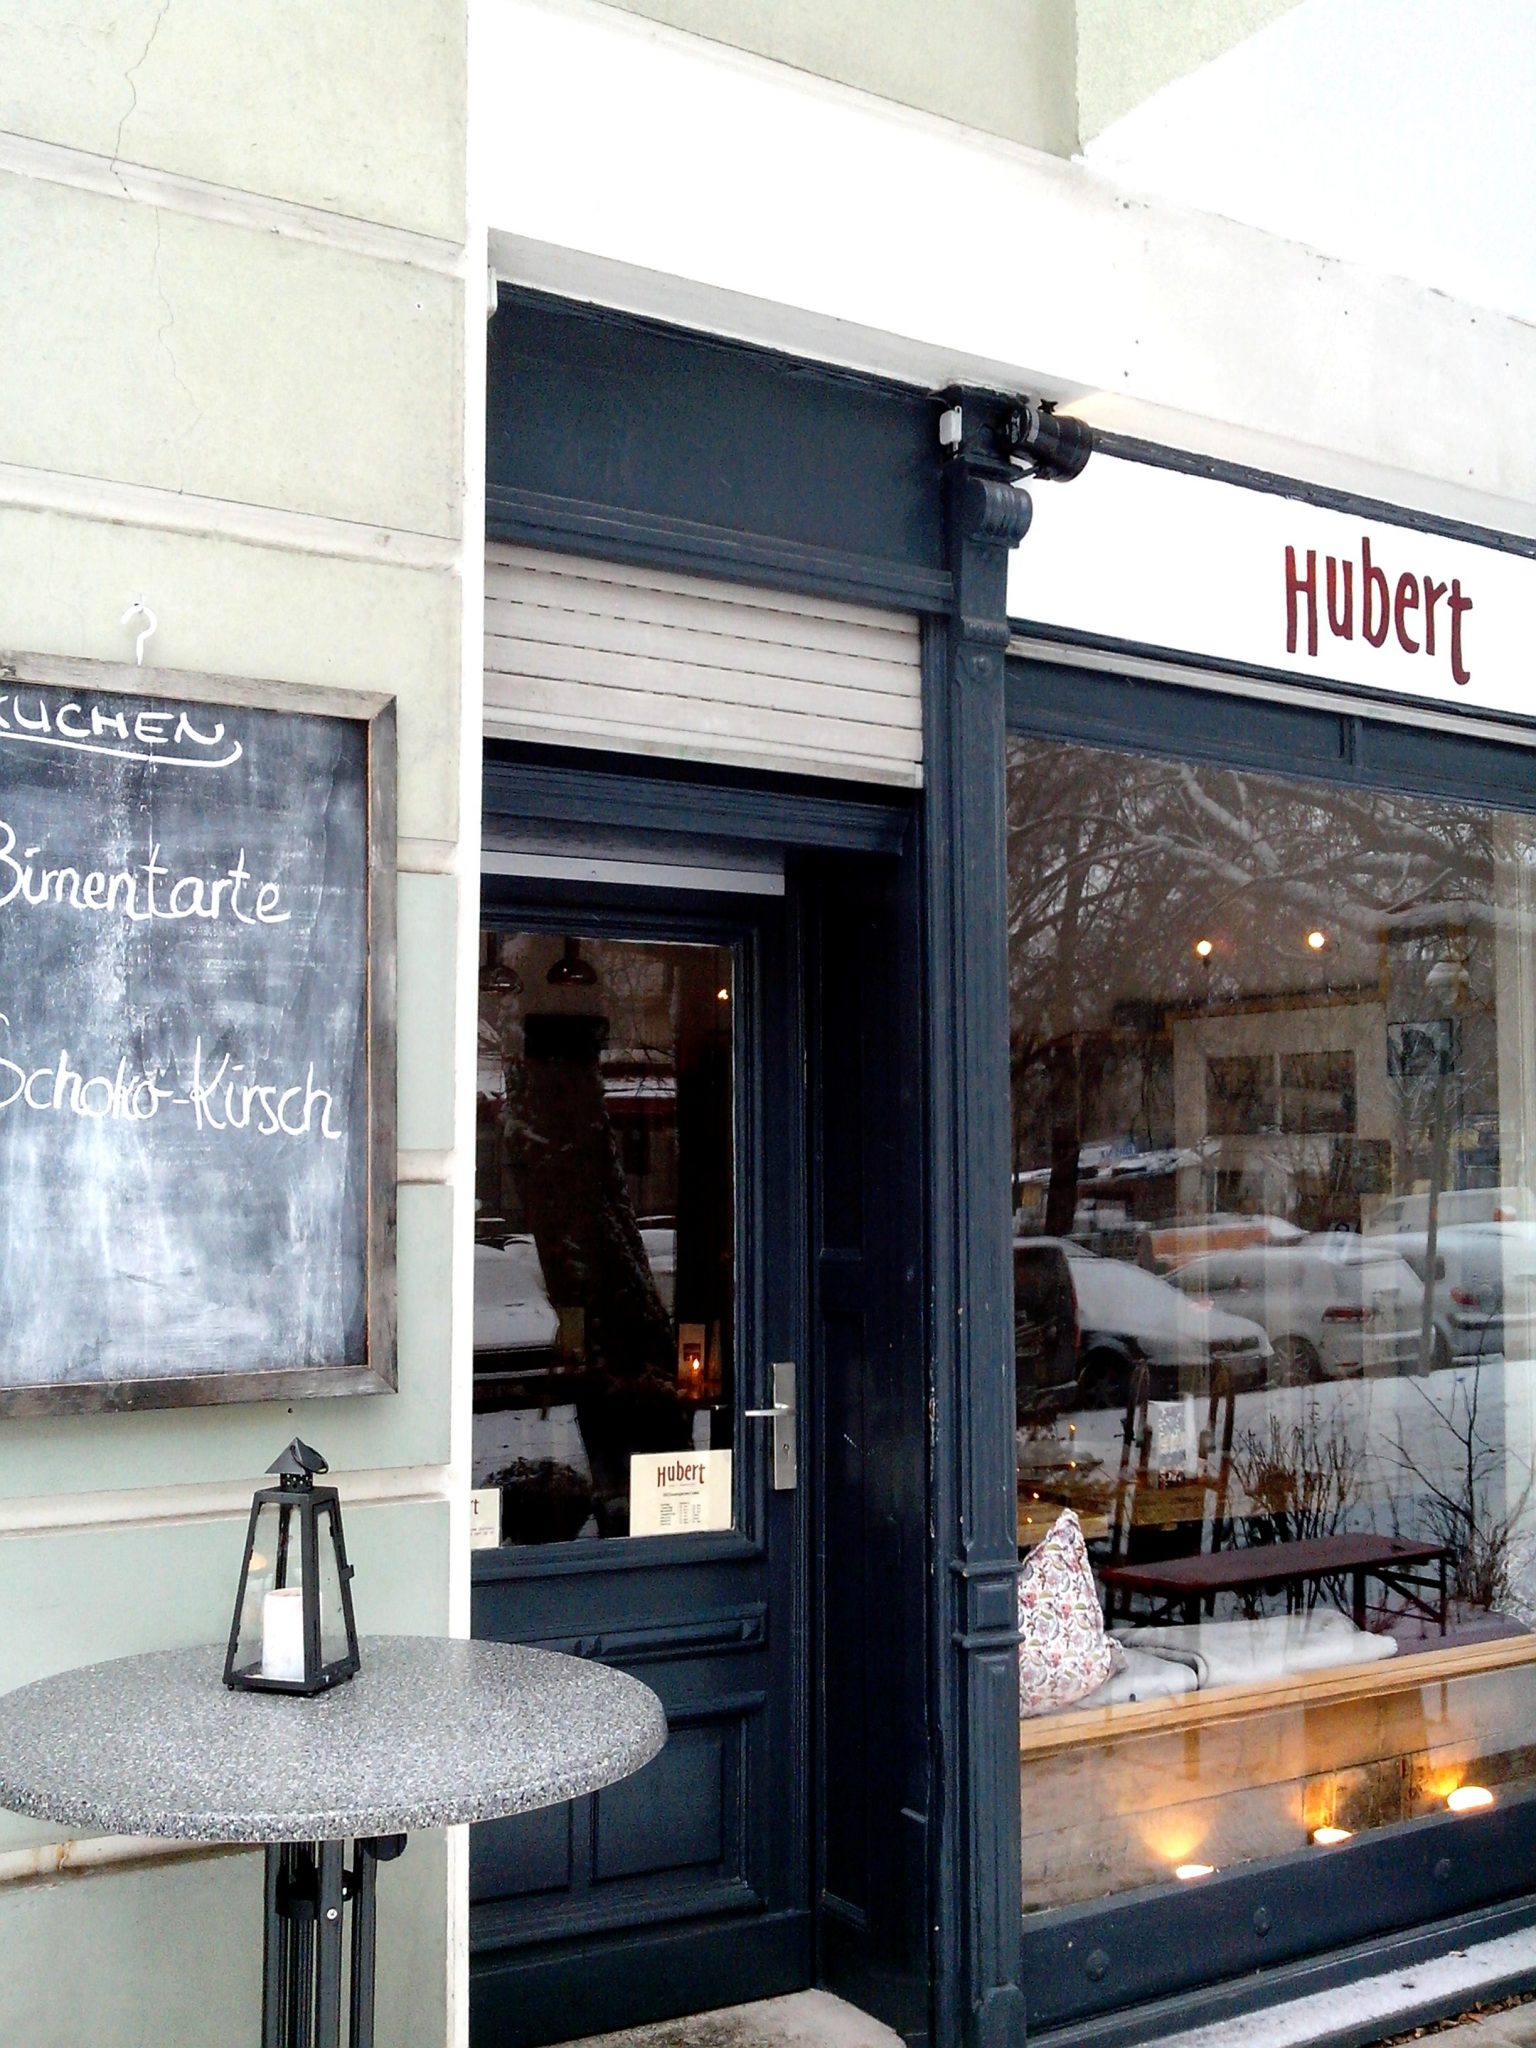 Café Hubert in der Tegeler Str.